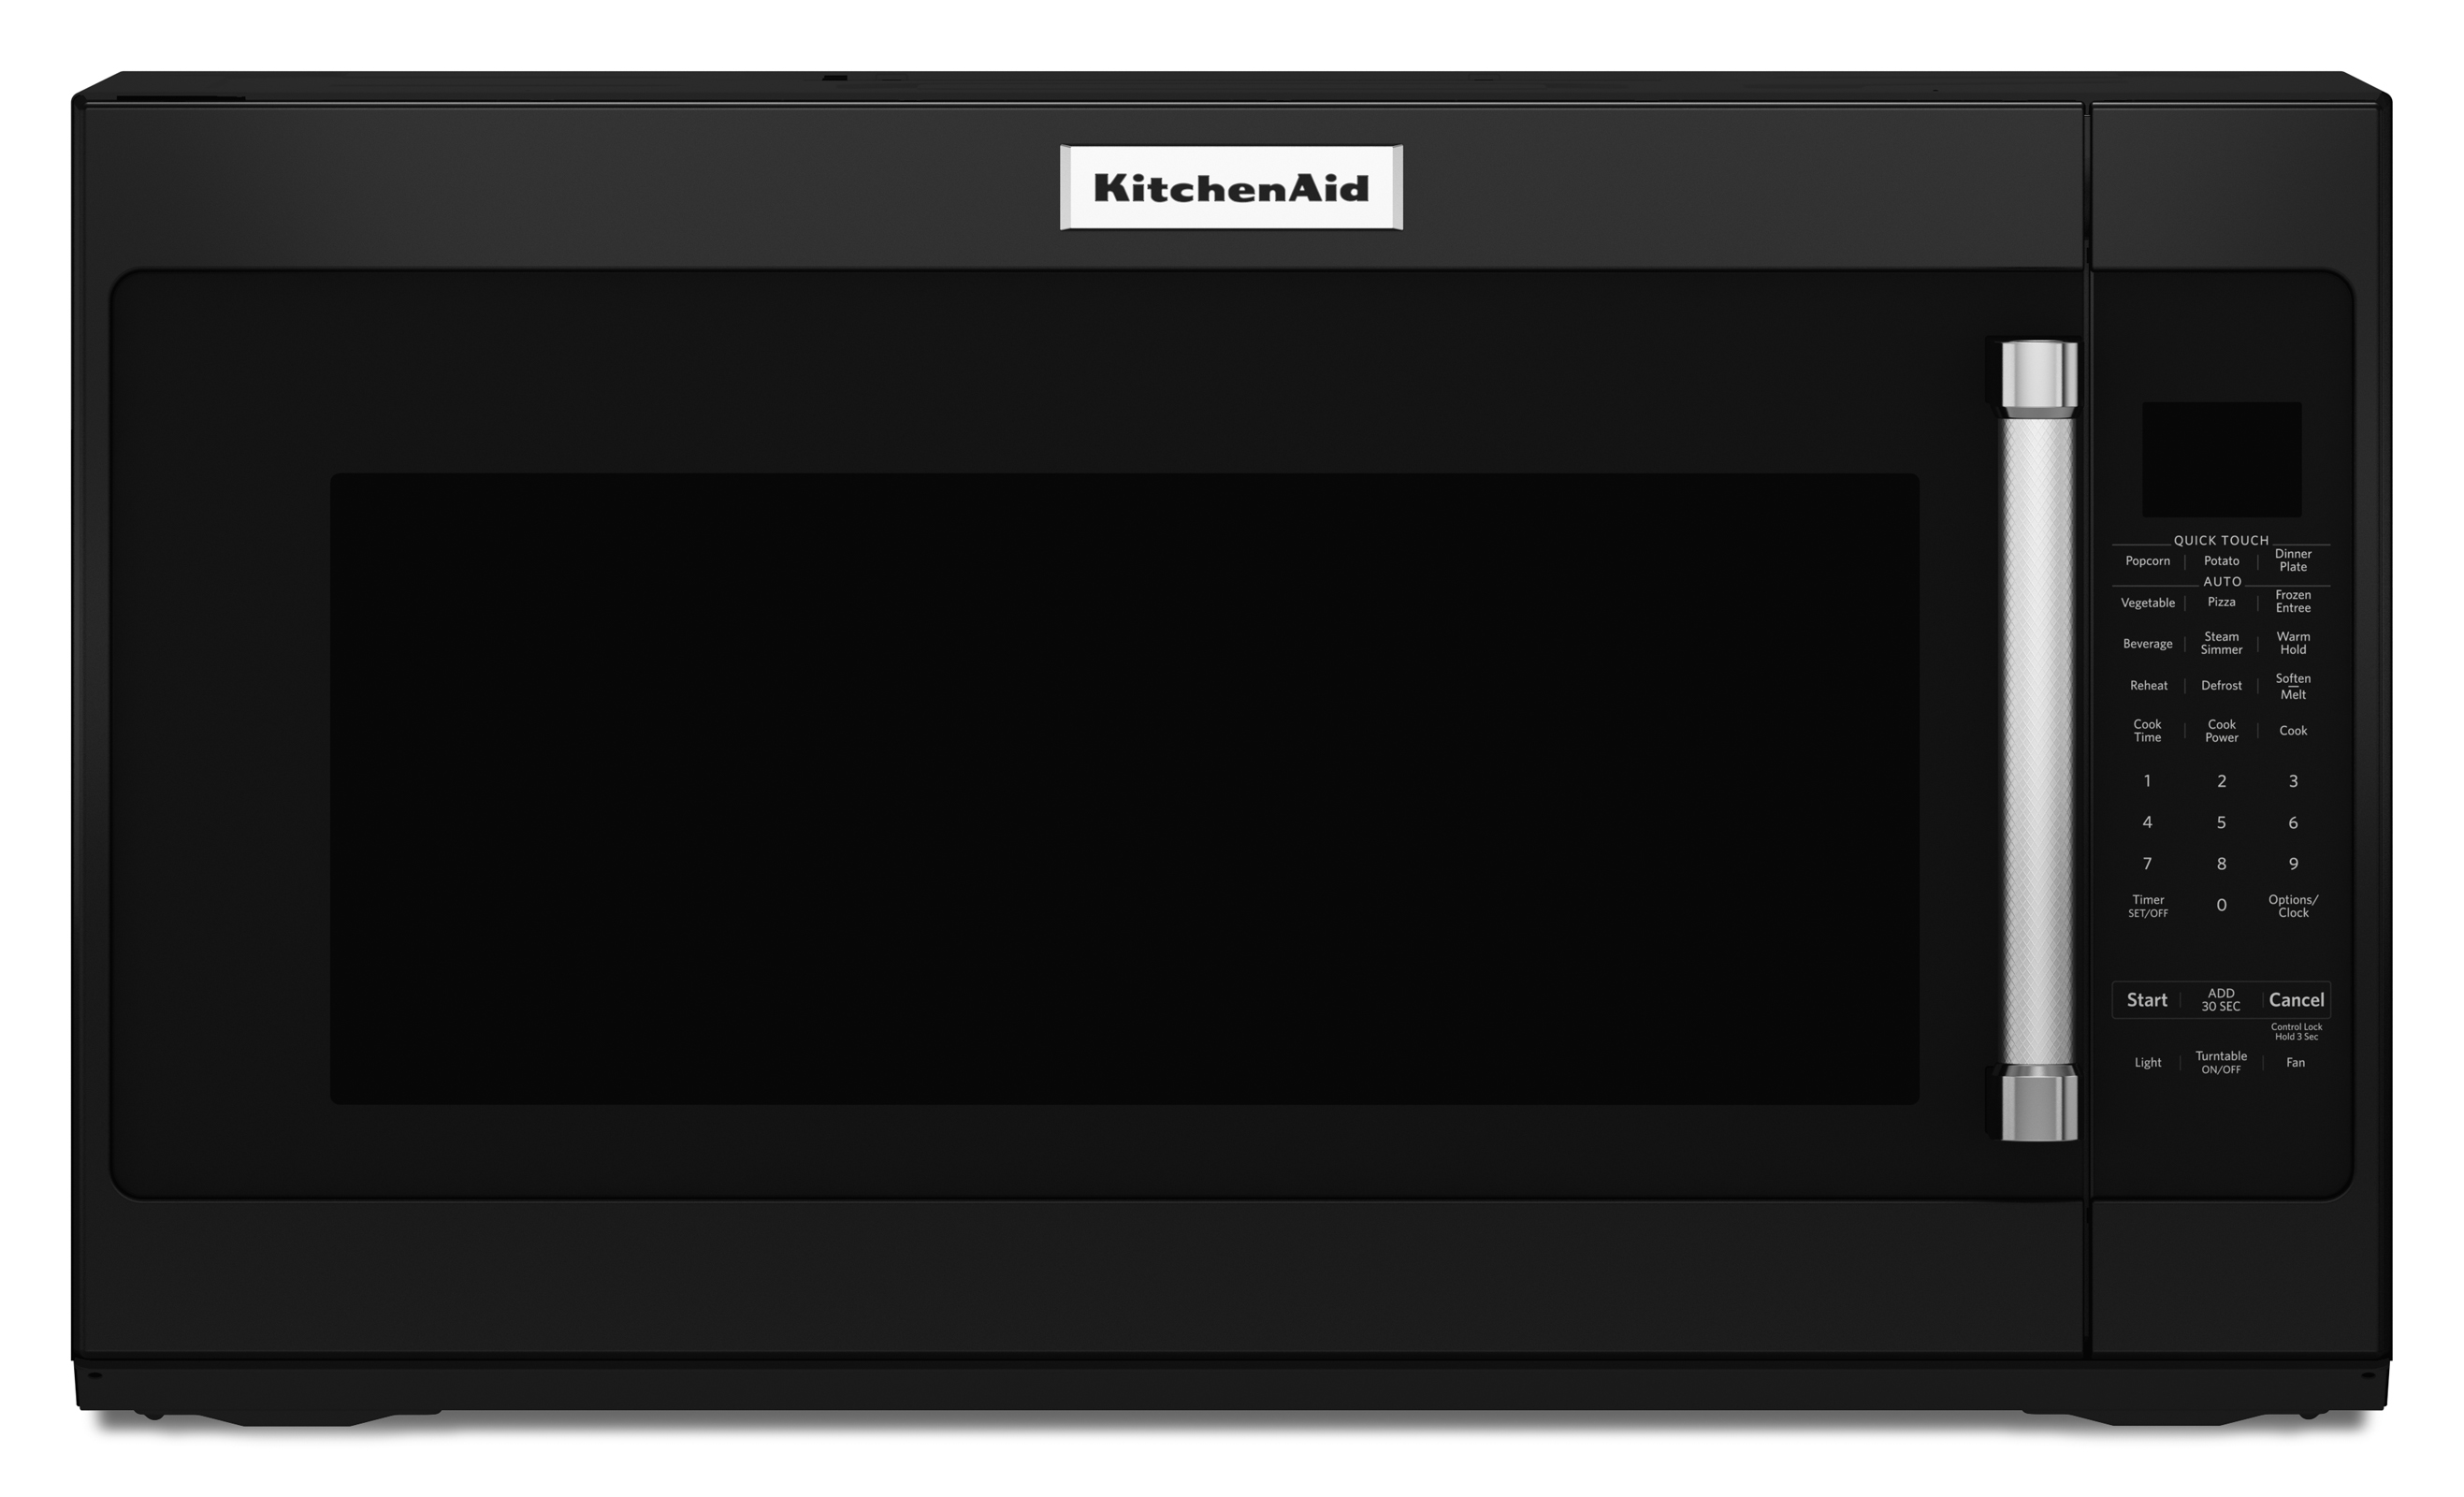 KitchenAid KMHS120EBL 2.0 cu. ft. 1000-Watt Microwave Oven - Black